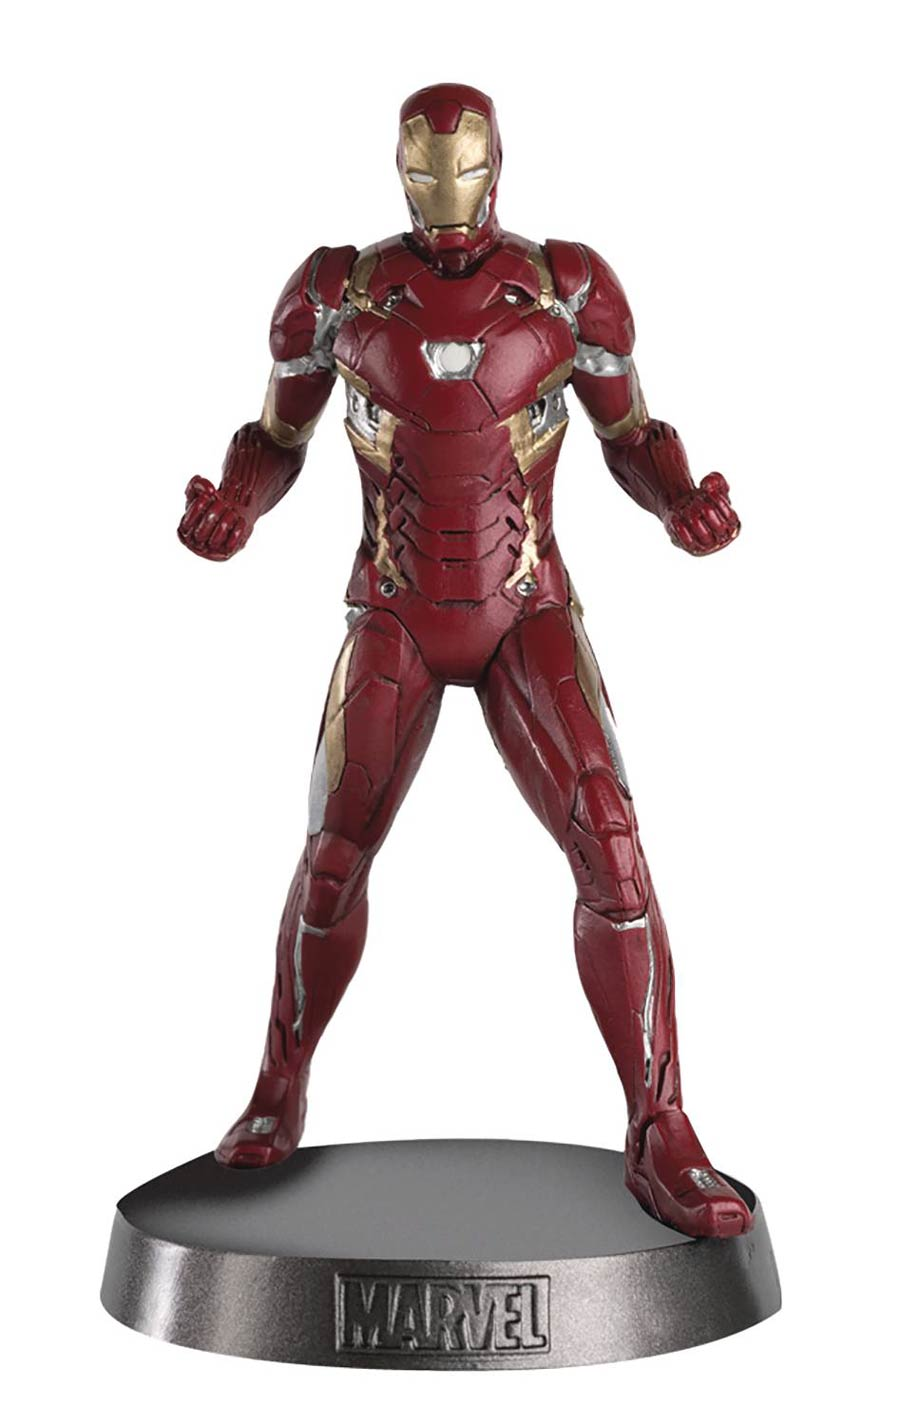 Marvel Movie Hero Collector Heavyweights #1 Iron Man Mark XLVI (Captain America Civil War)